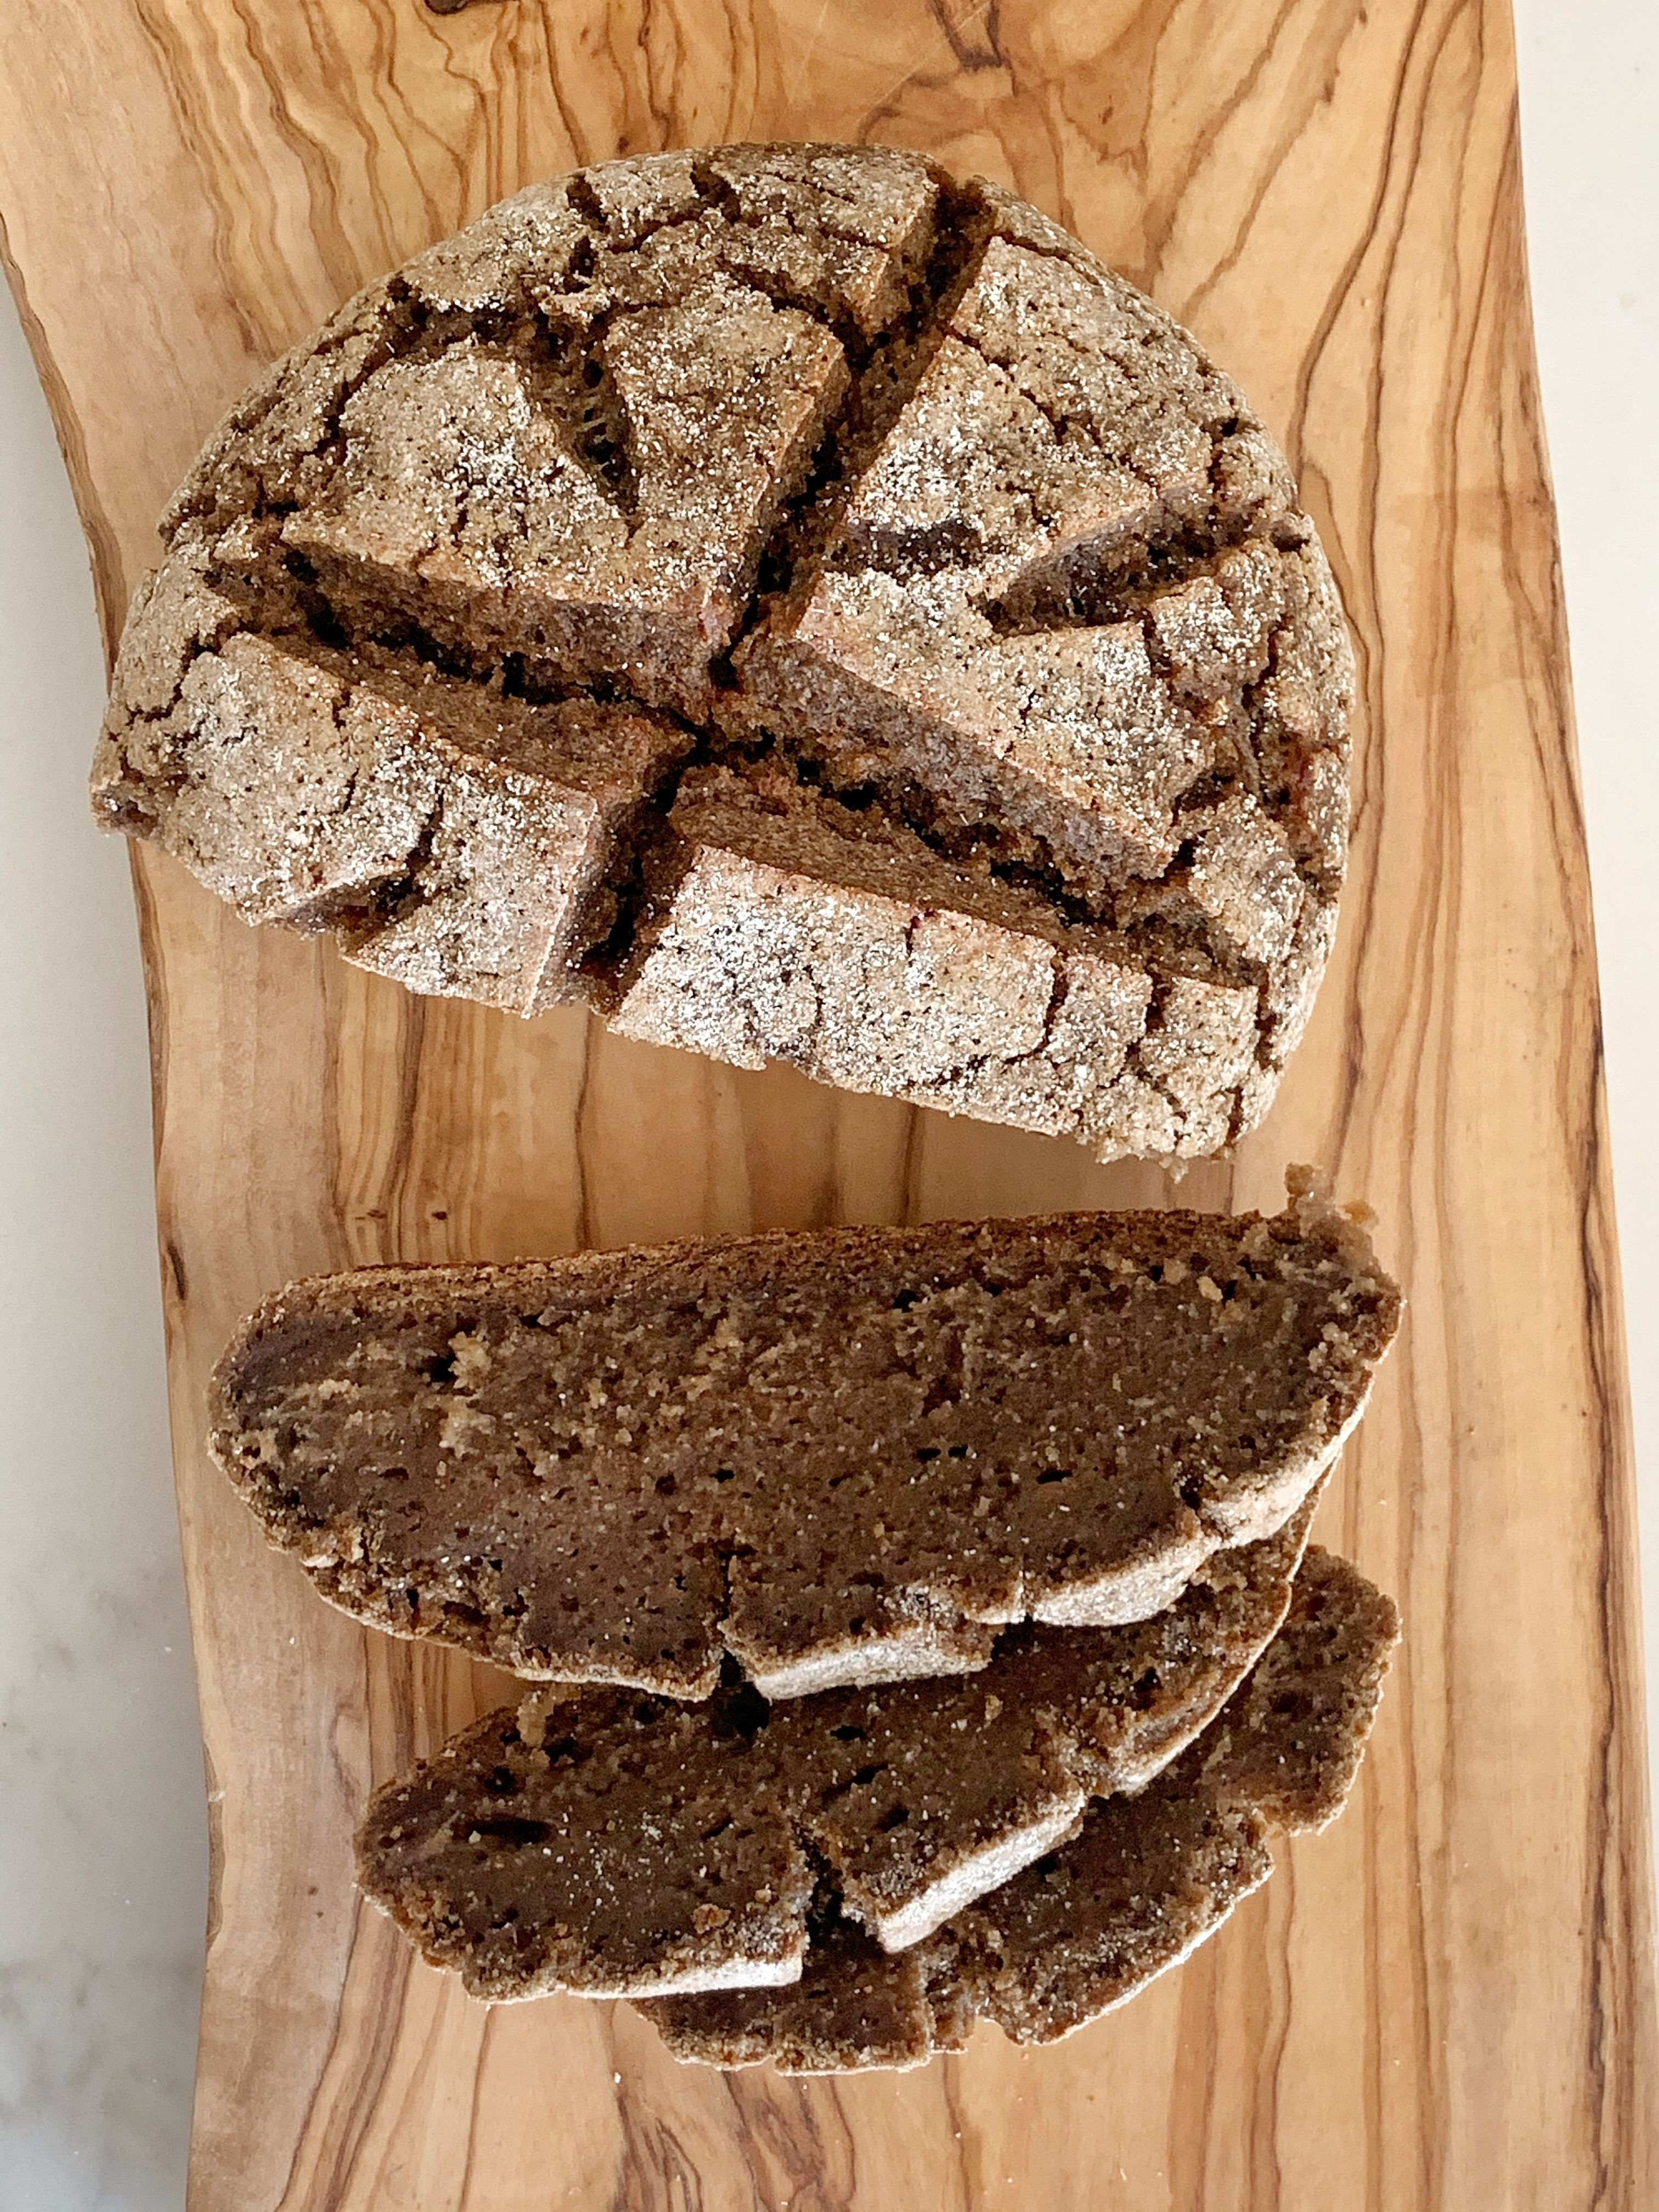 Pin on AIP/Paleo Bread